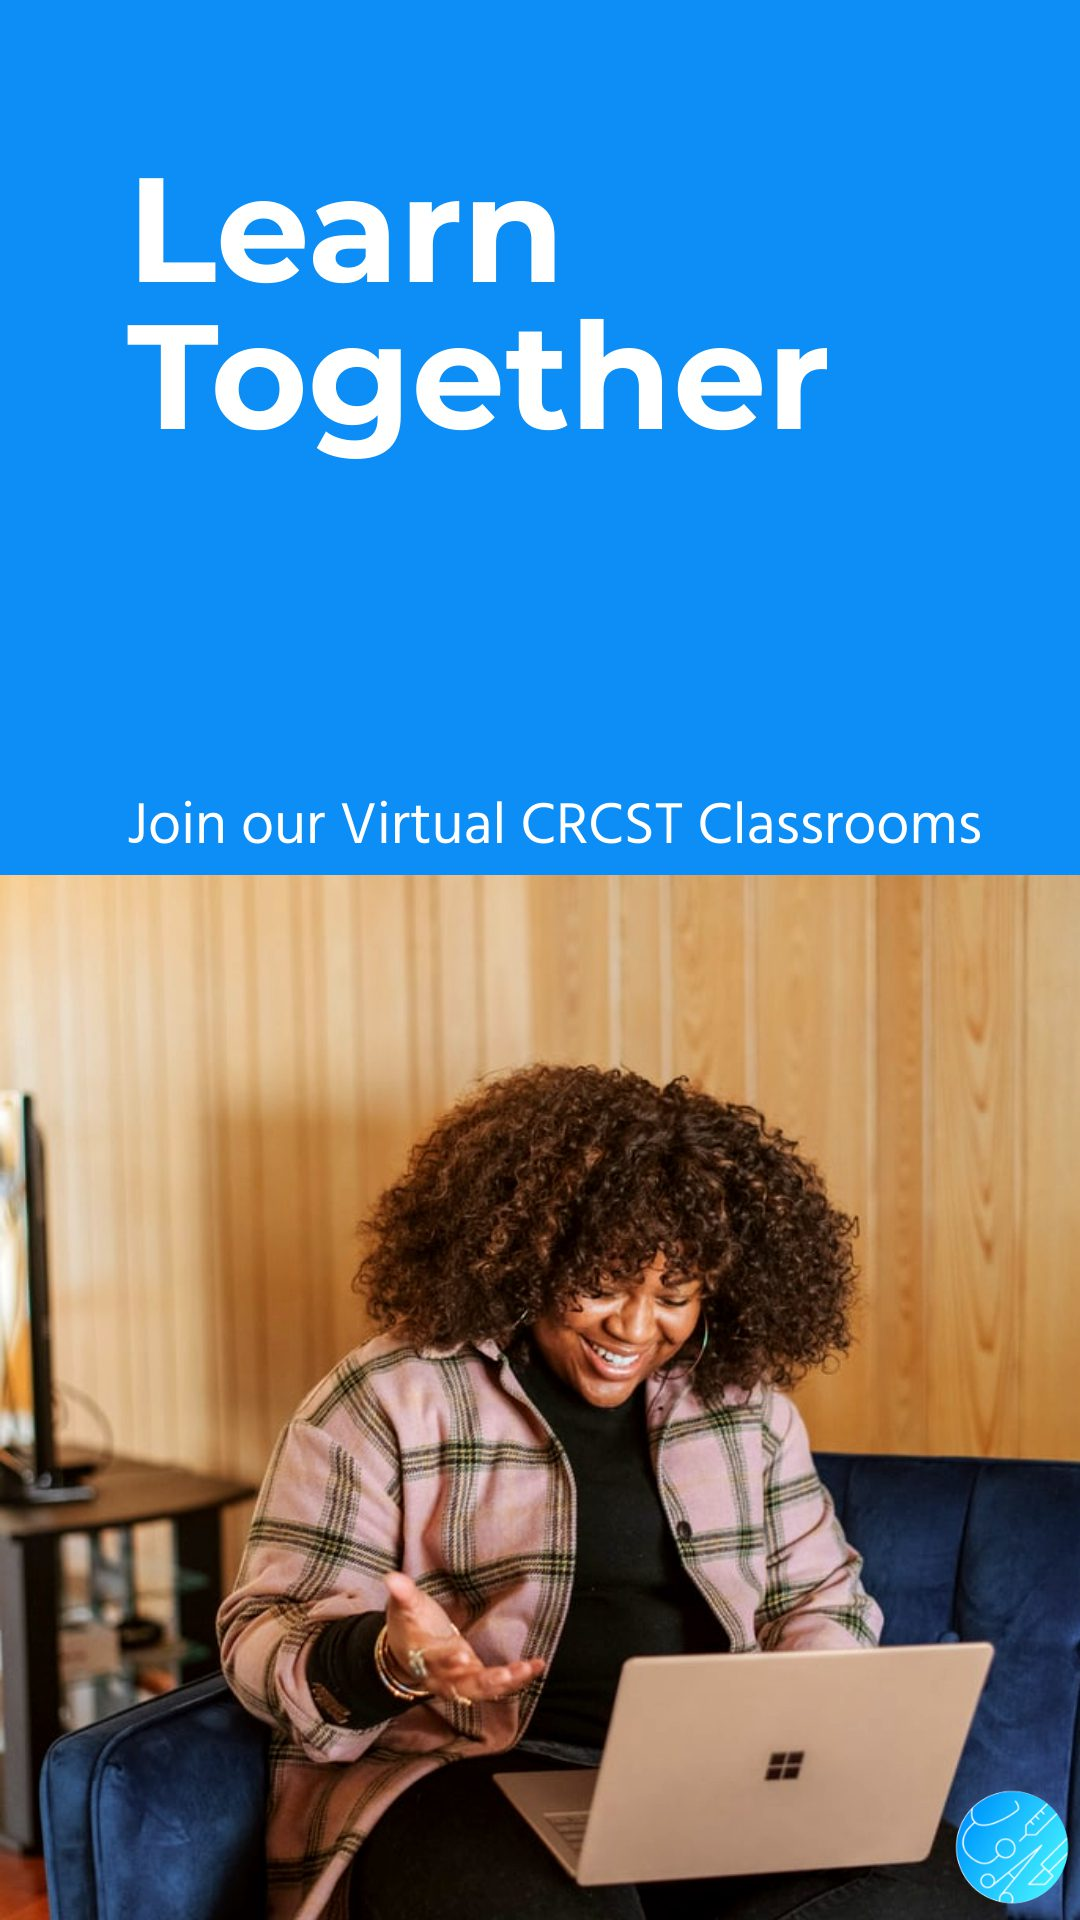 Learn Together Virtual CRCST Course